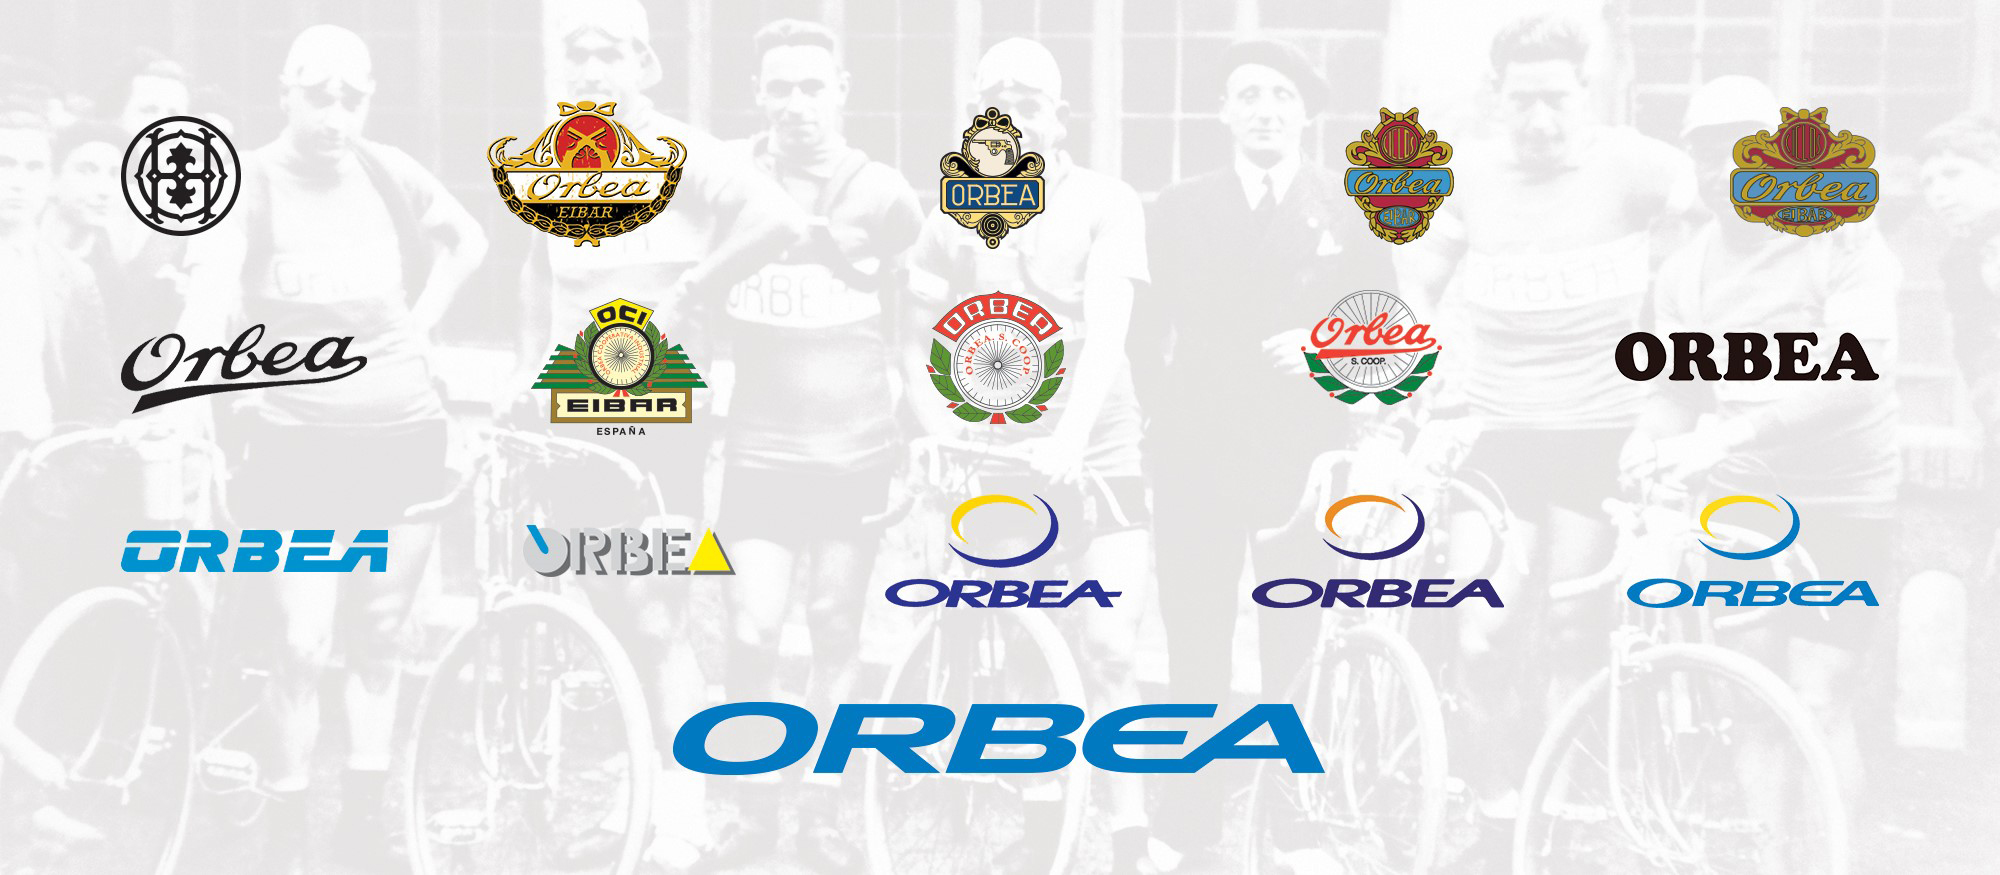 https://www.orbea.com/img/blognew/in-text/montaje_def_logosorbea.jpg